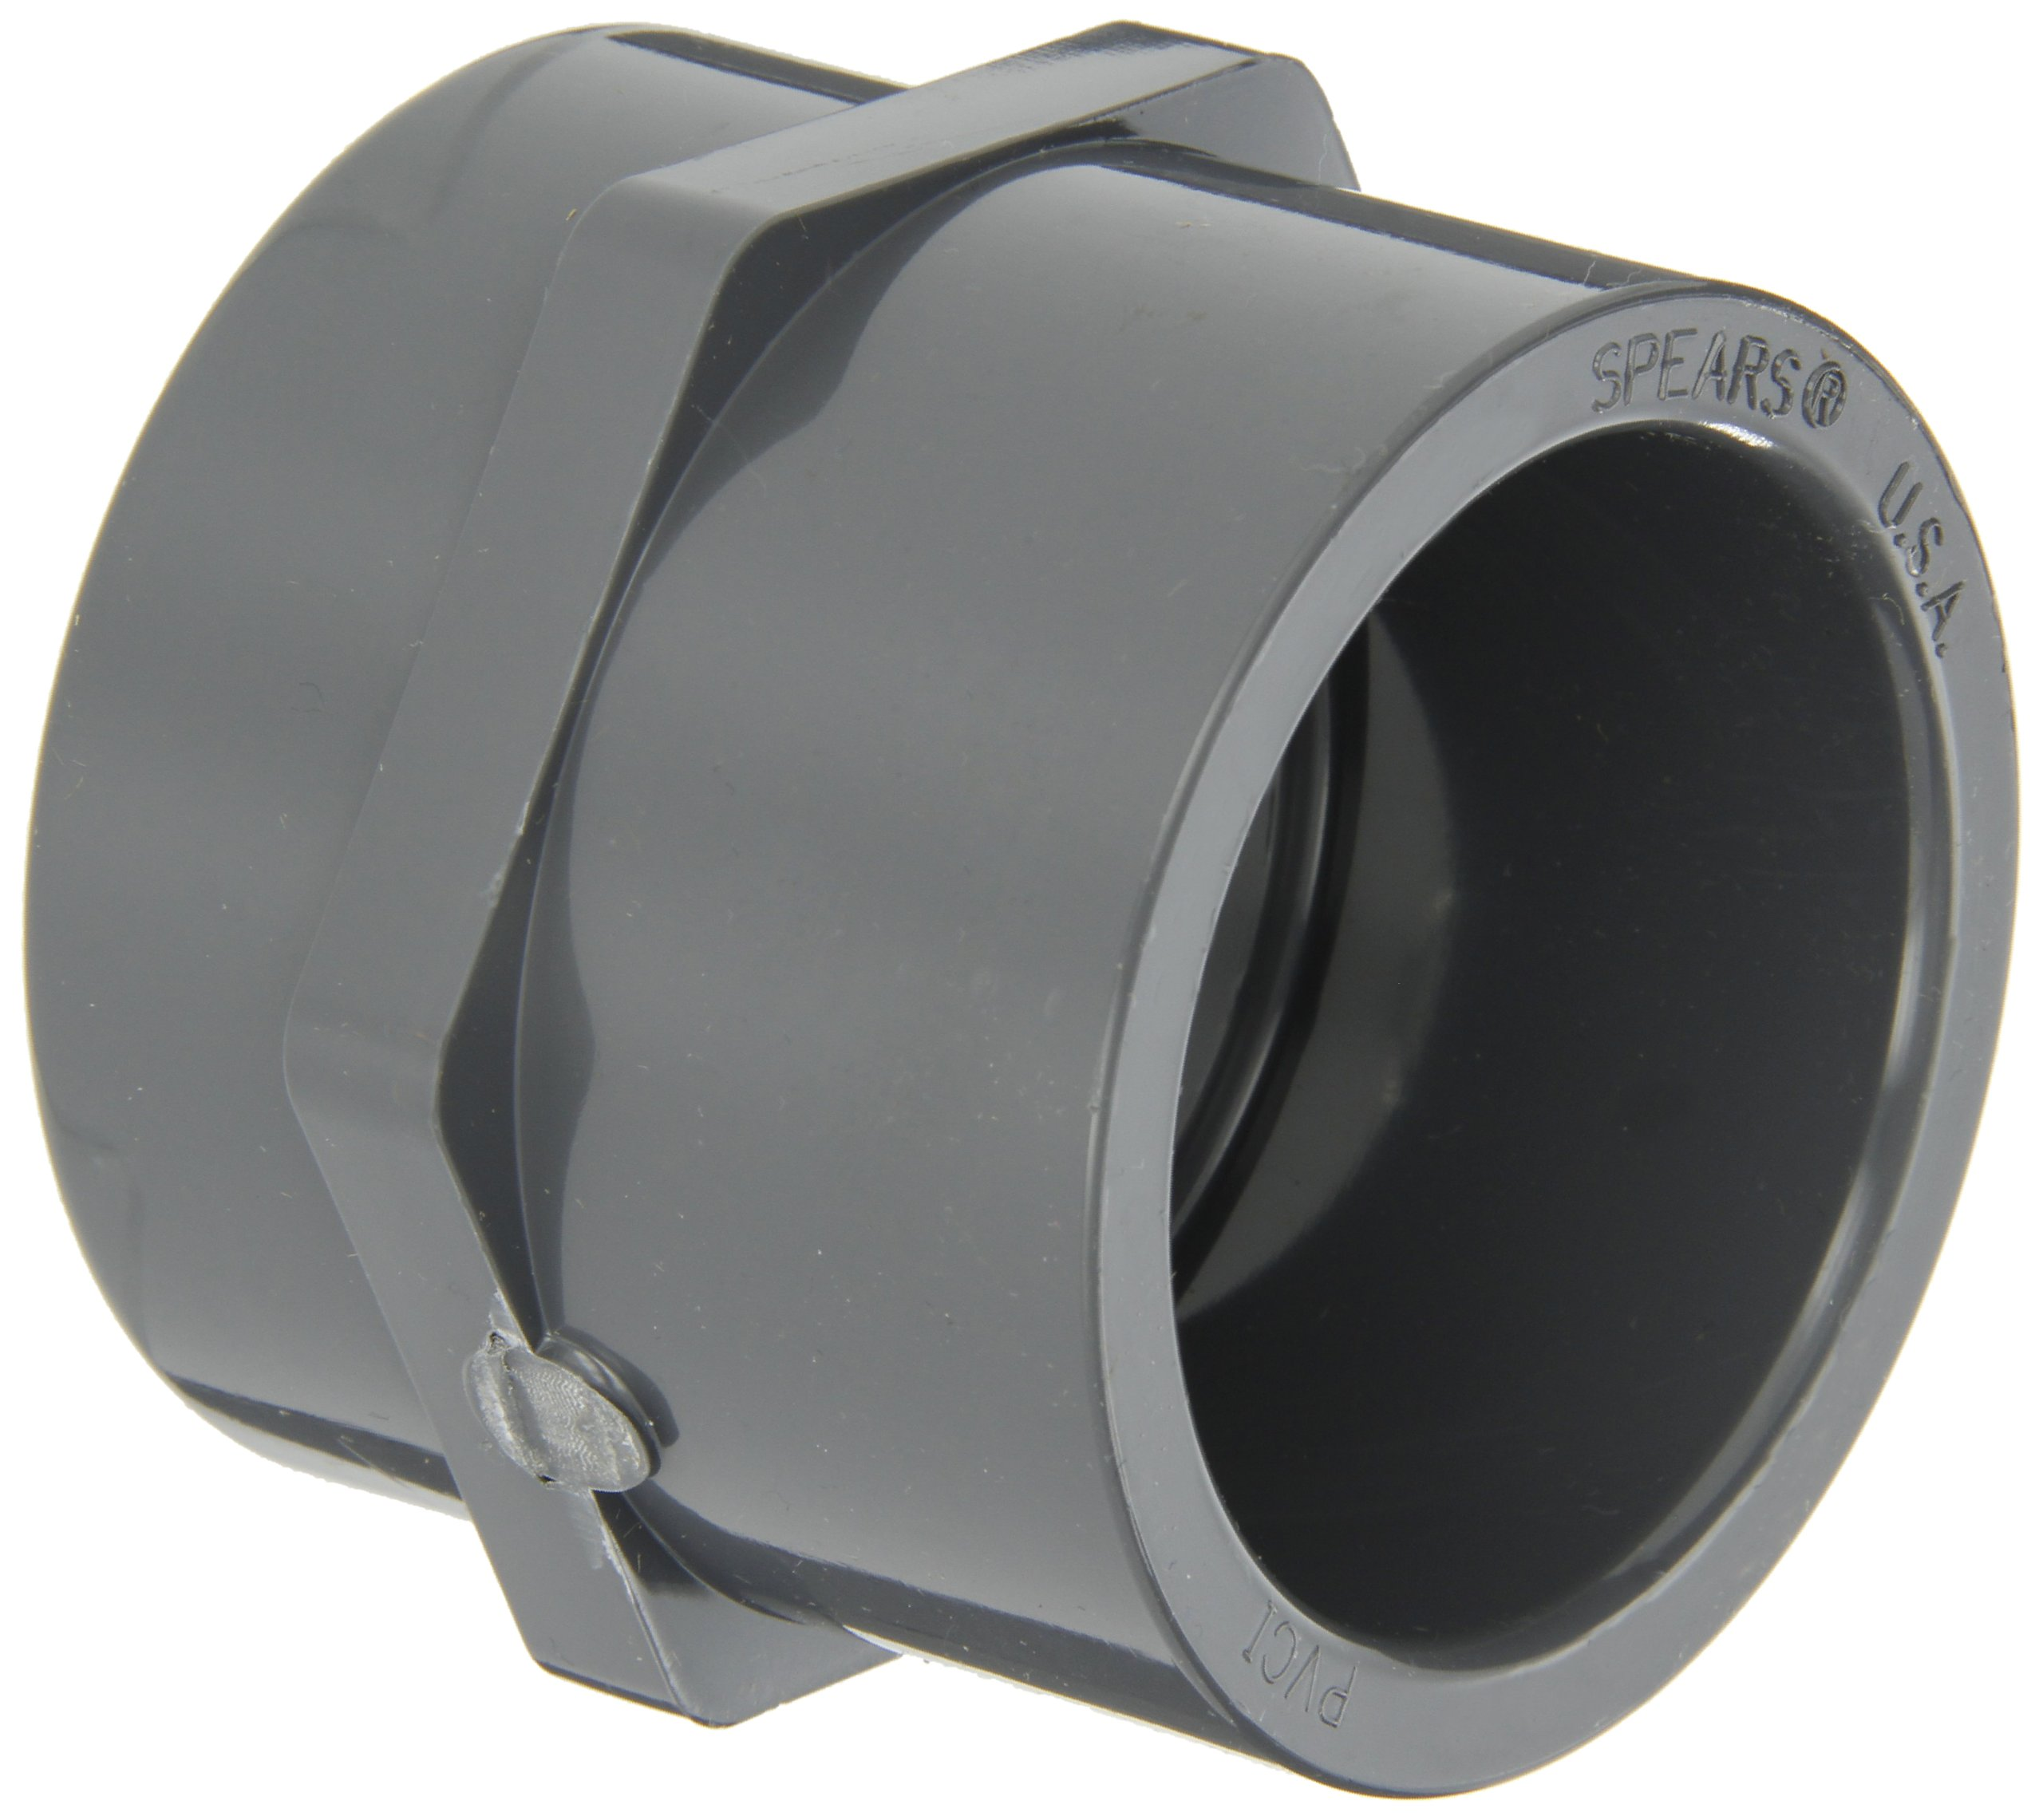 GF Piping Systems PVC Pipe Fitting, Adapter, Schedule 80, Gray, 1-1/2'' NPT Female x Slip Socket